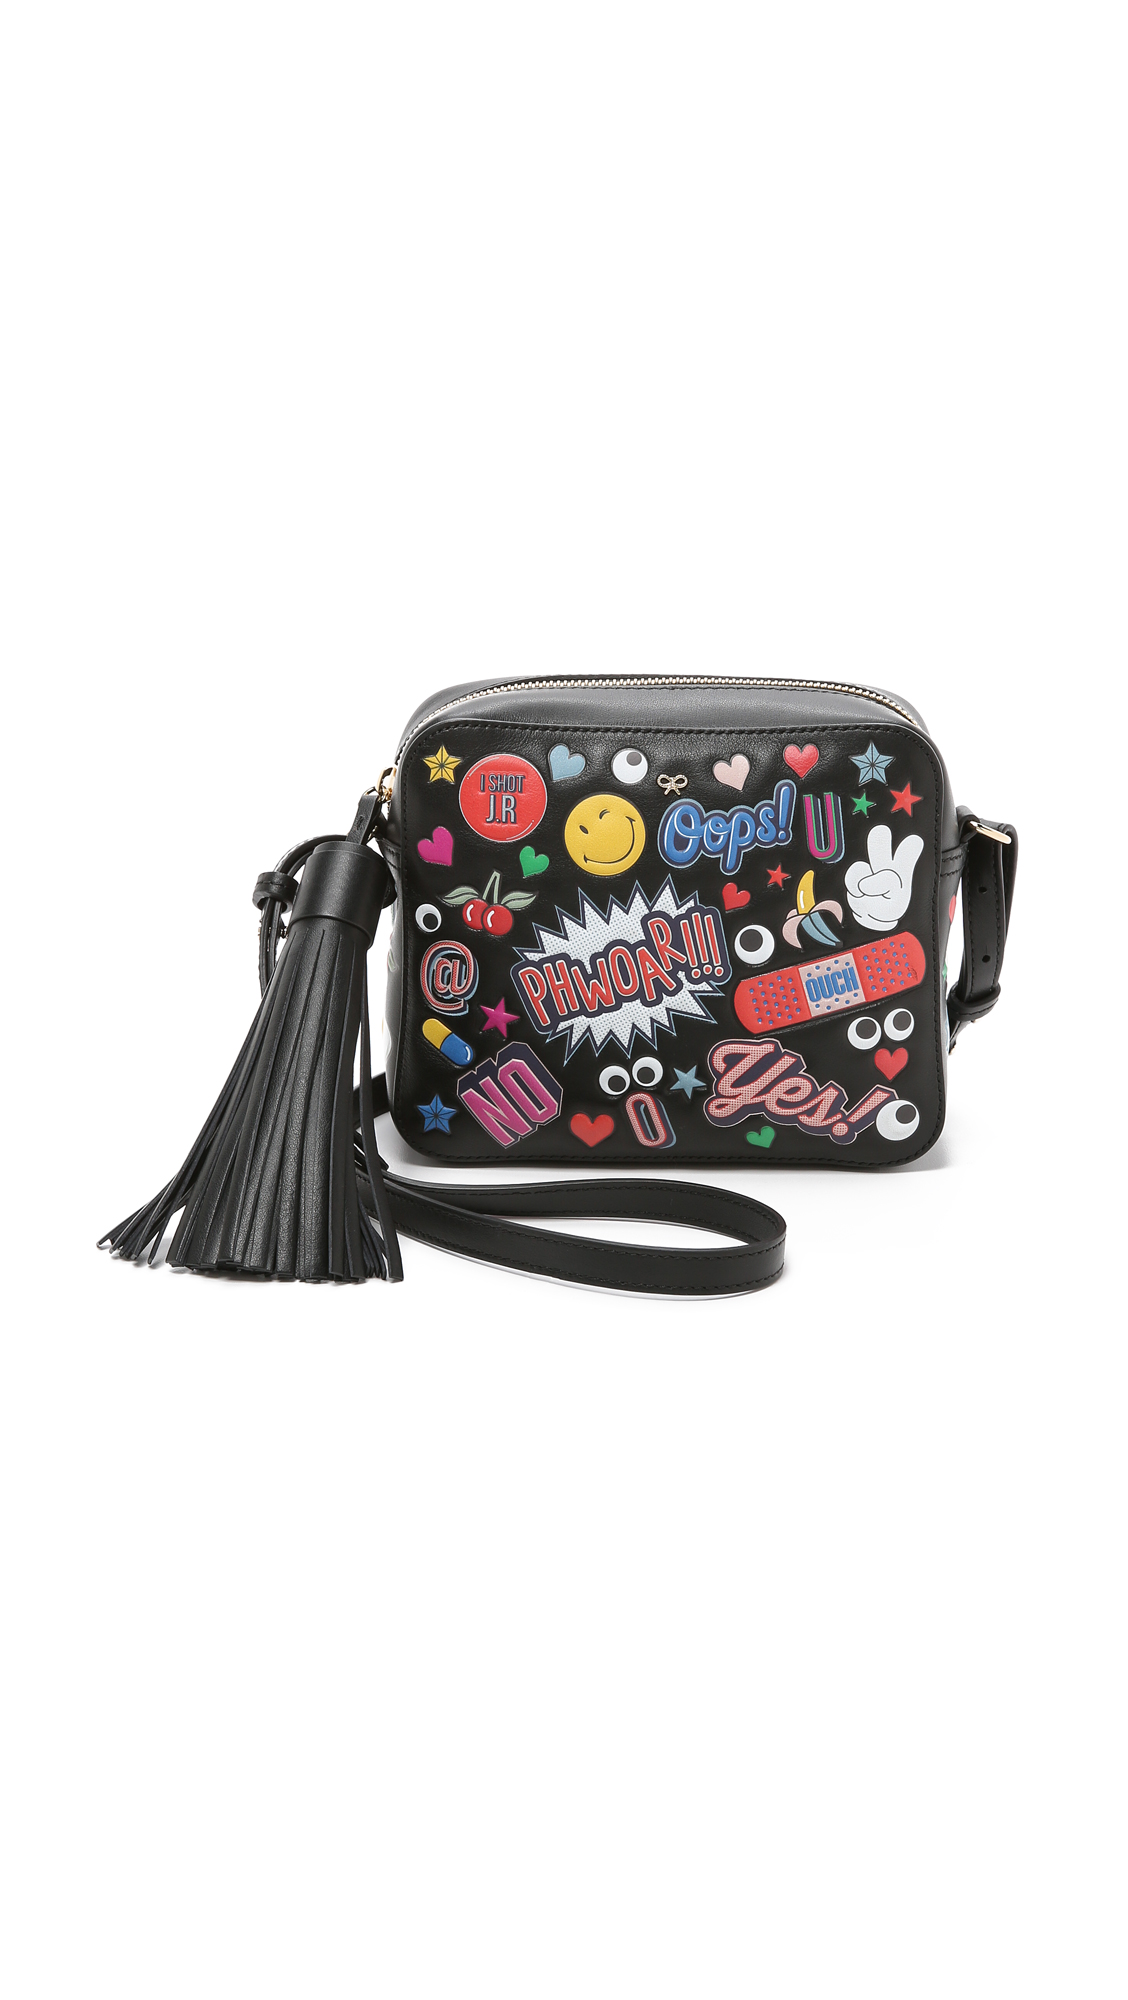 ANYA HINDMARCH Crossbody All Over Wink Stickers Bag In Black Circus Leather